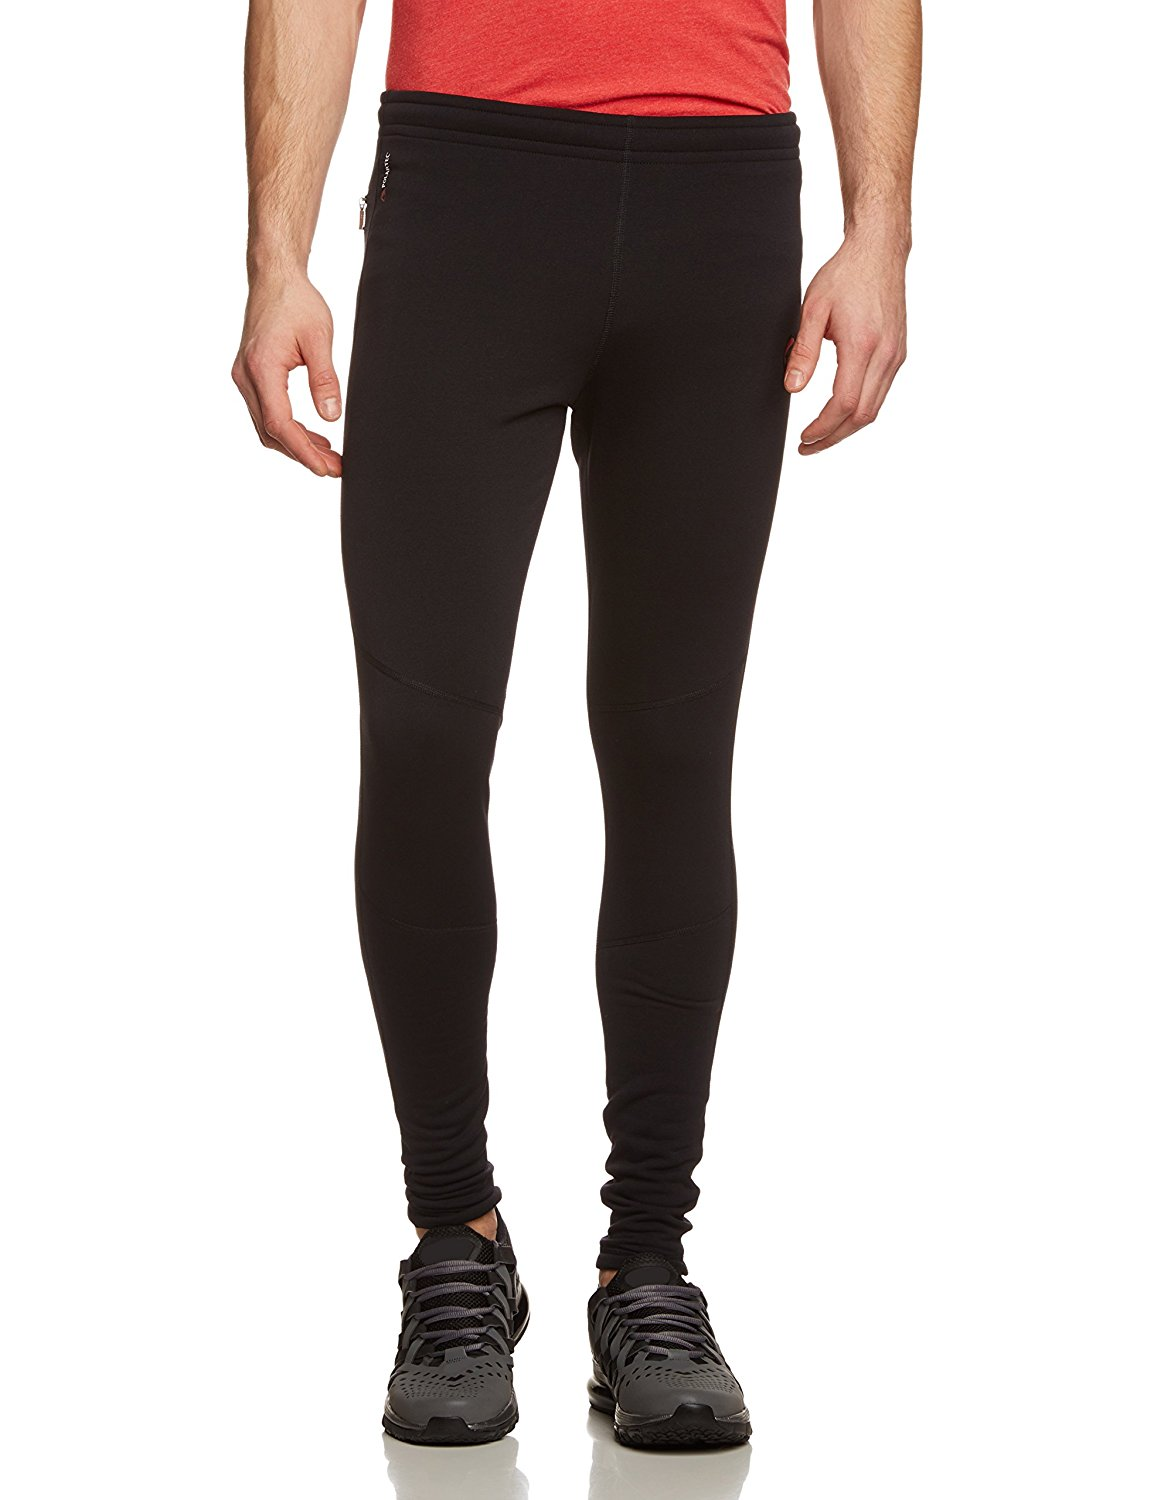 factory outlet new styles undefeated x Buy Mammut Denali Tights in Cheap Price on Alibaba.com